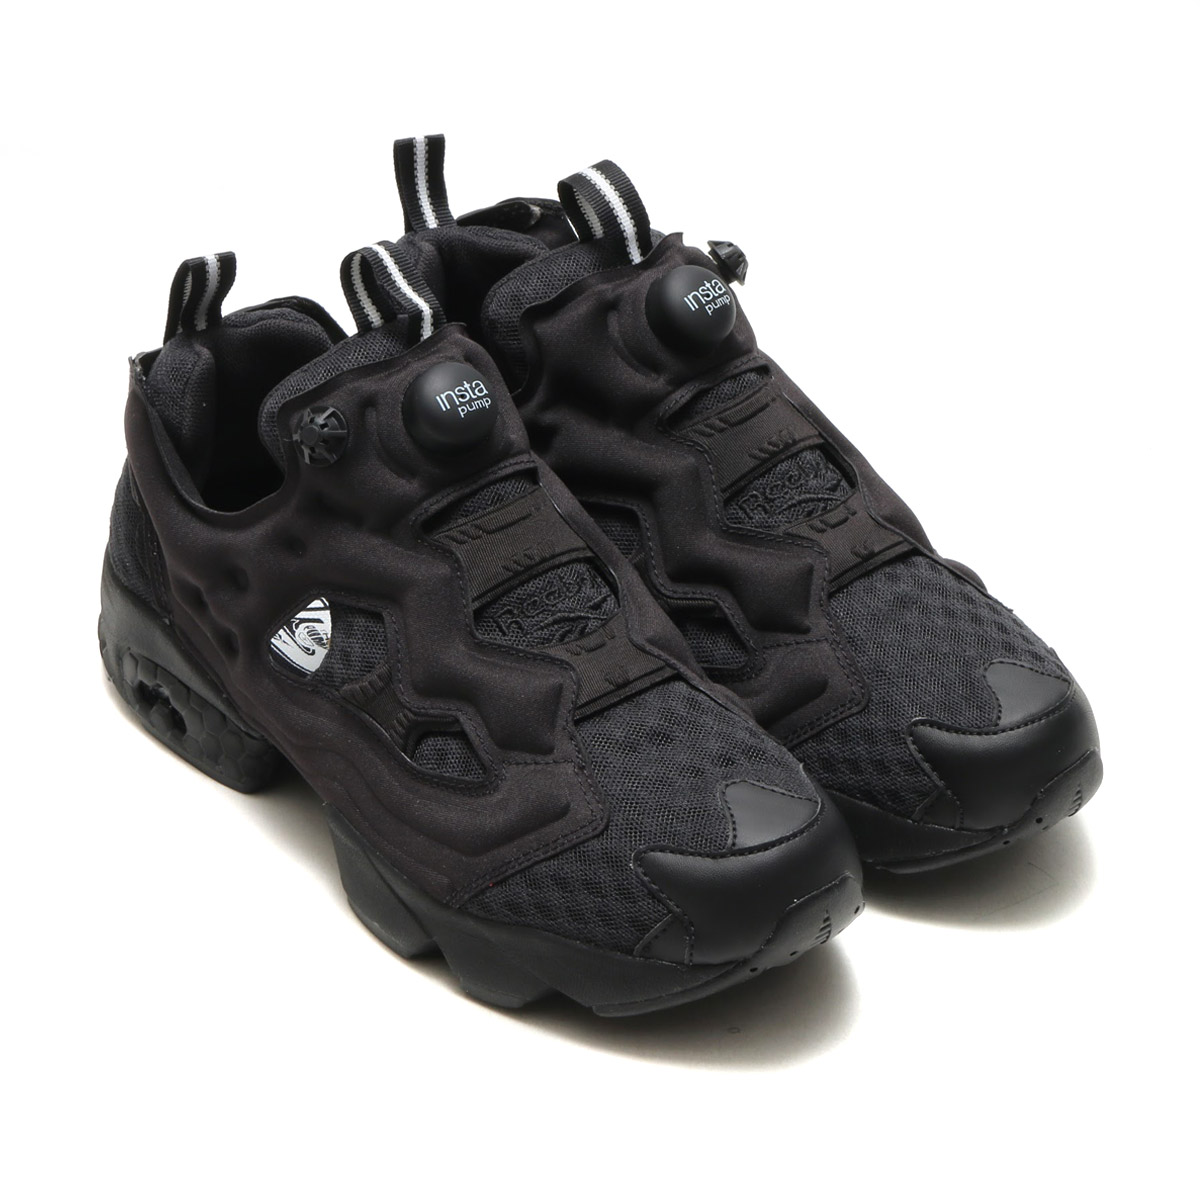 0ae0b8e5428 Unyielding masterpiece of Reebok, CC monotone pack of INSTAPUMP FURY. Is  cool with monotone look until now by dropping INSTAPUMP FURY where a bold  color was ...